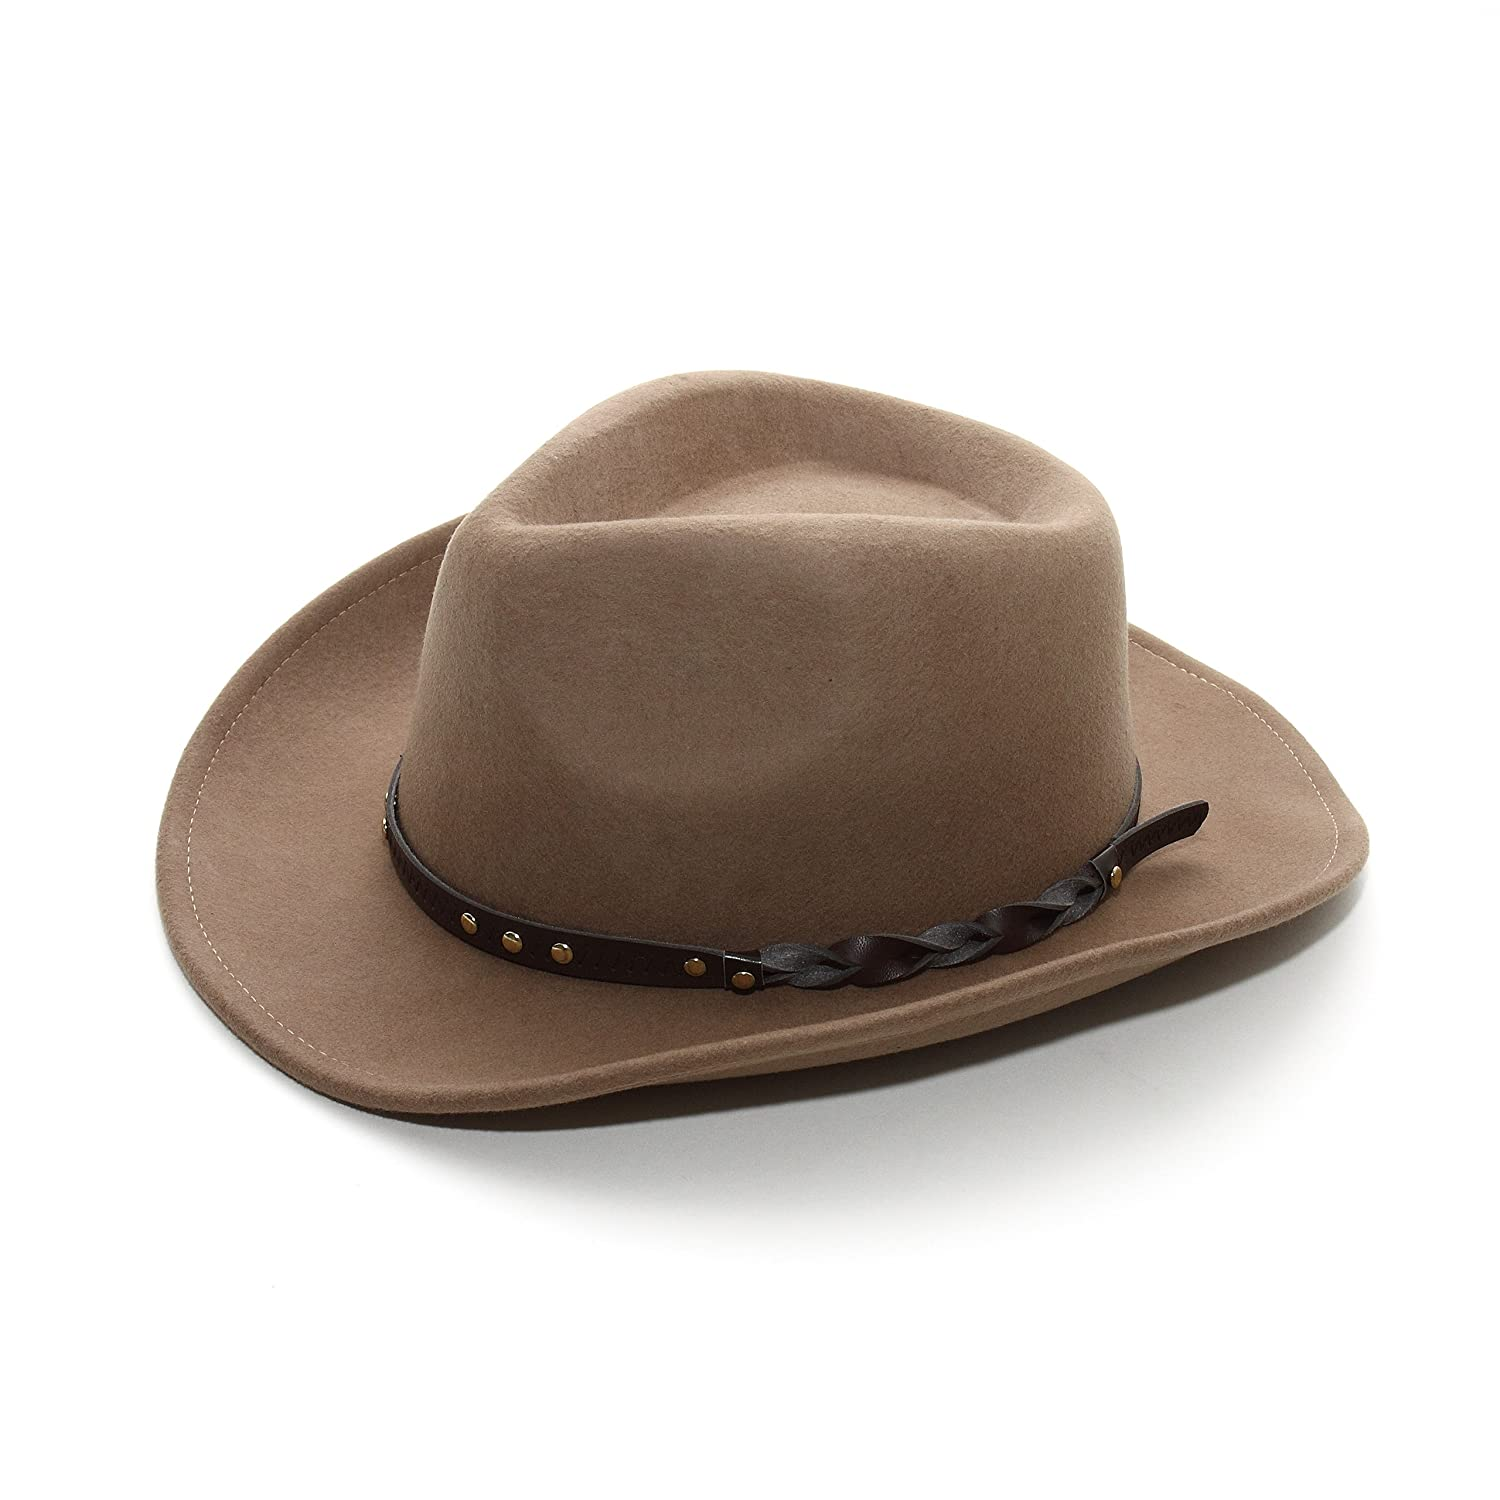 MG Infinity Selections Men's Wool Felt Cowboy Hat-8707